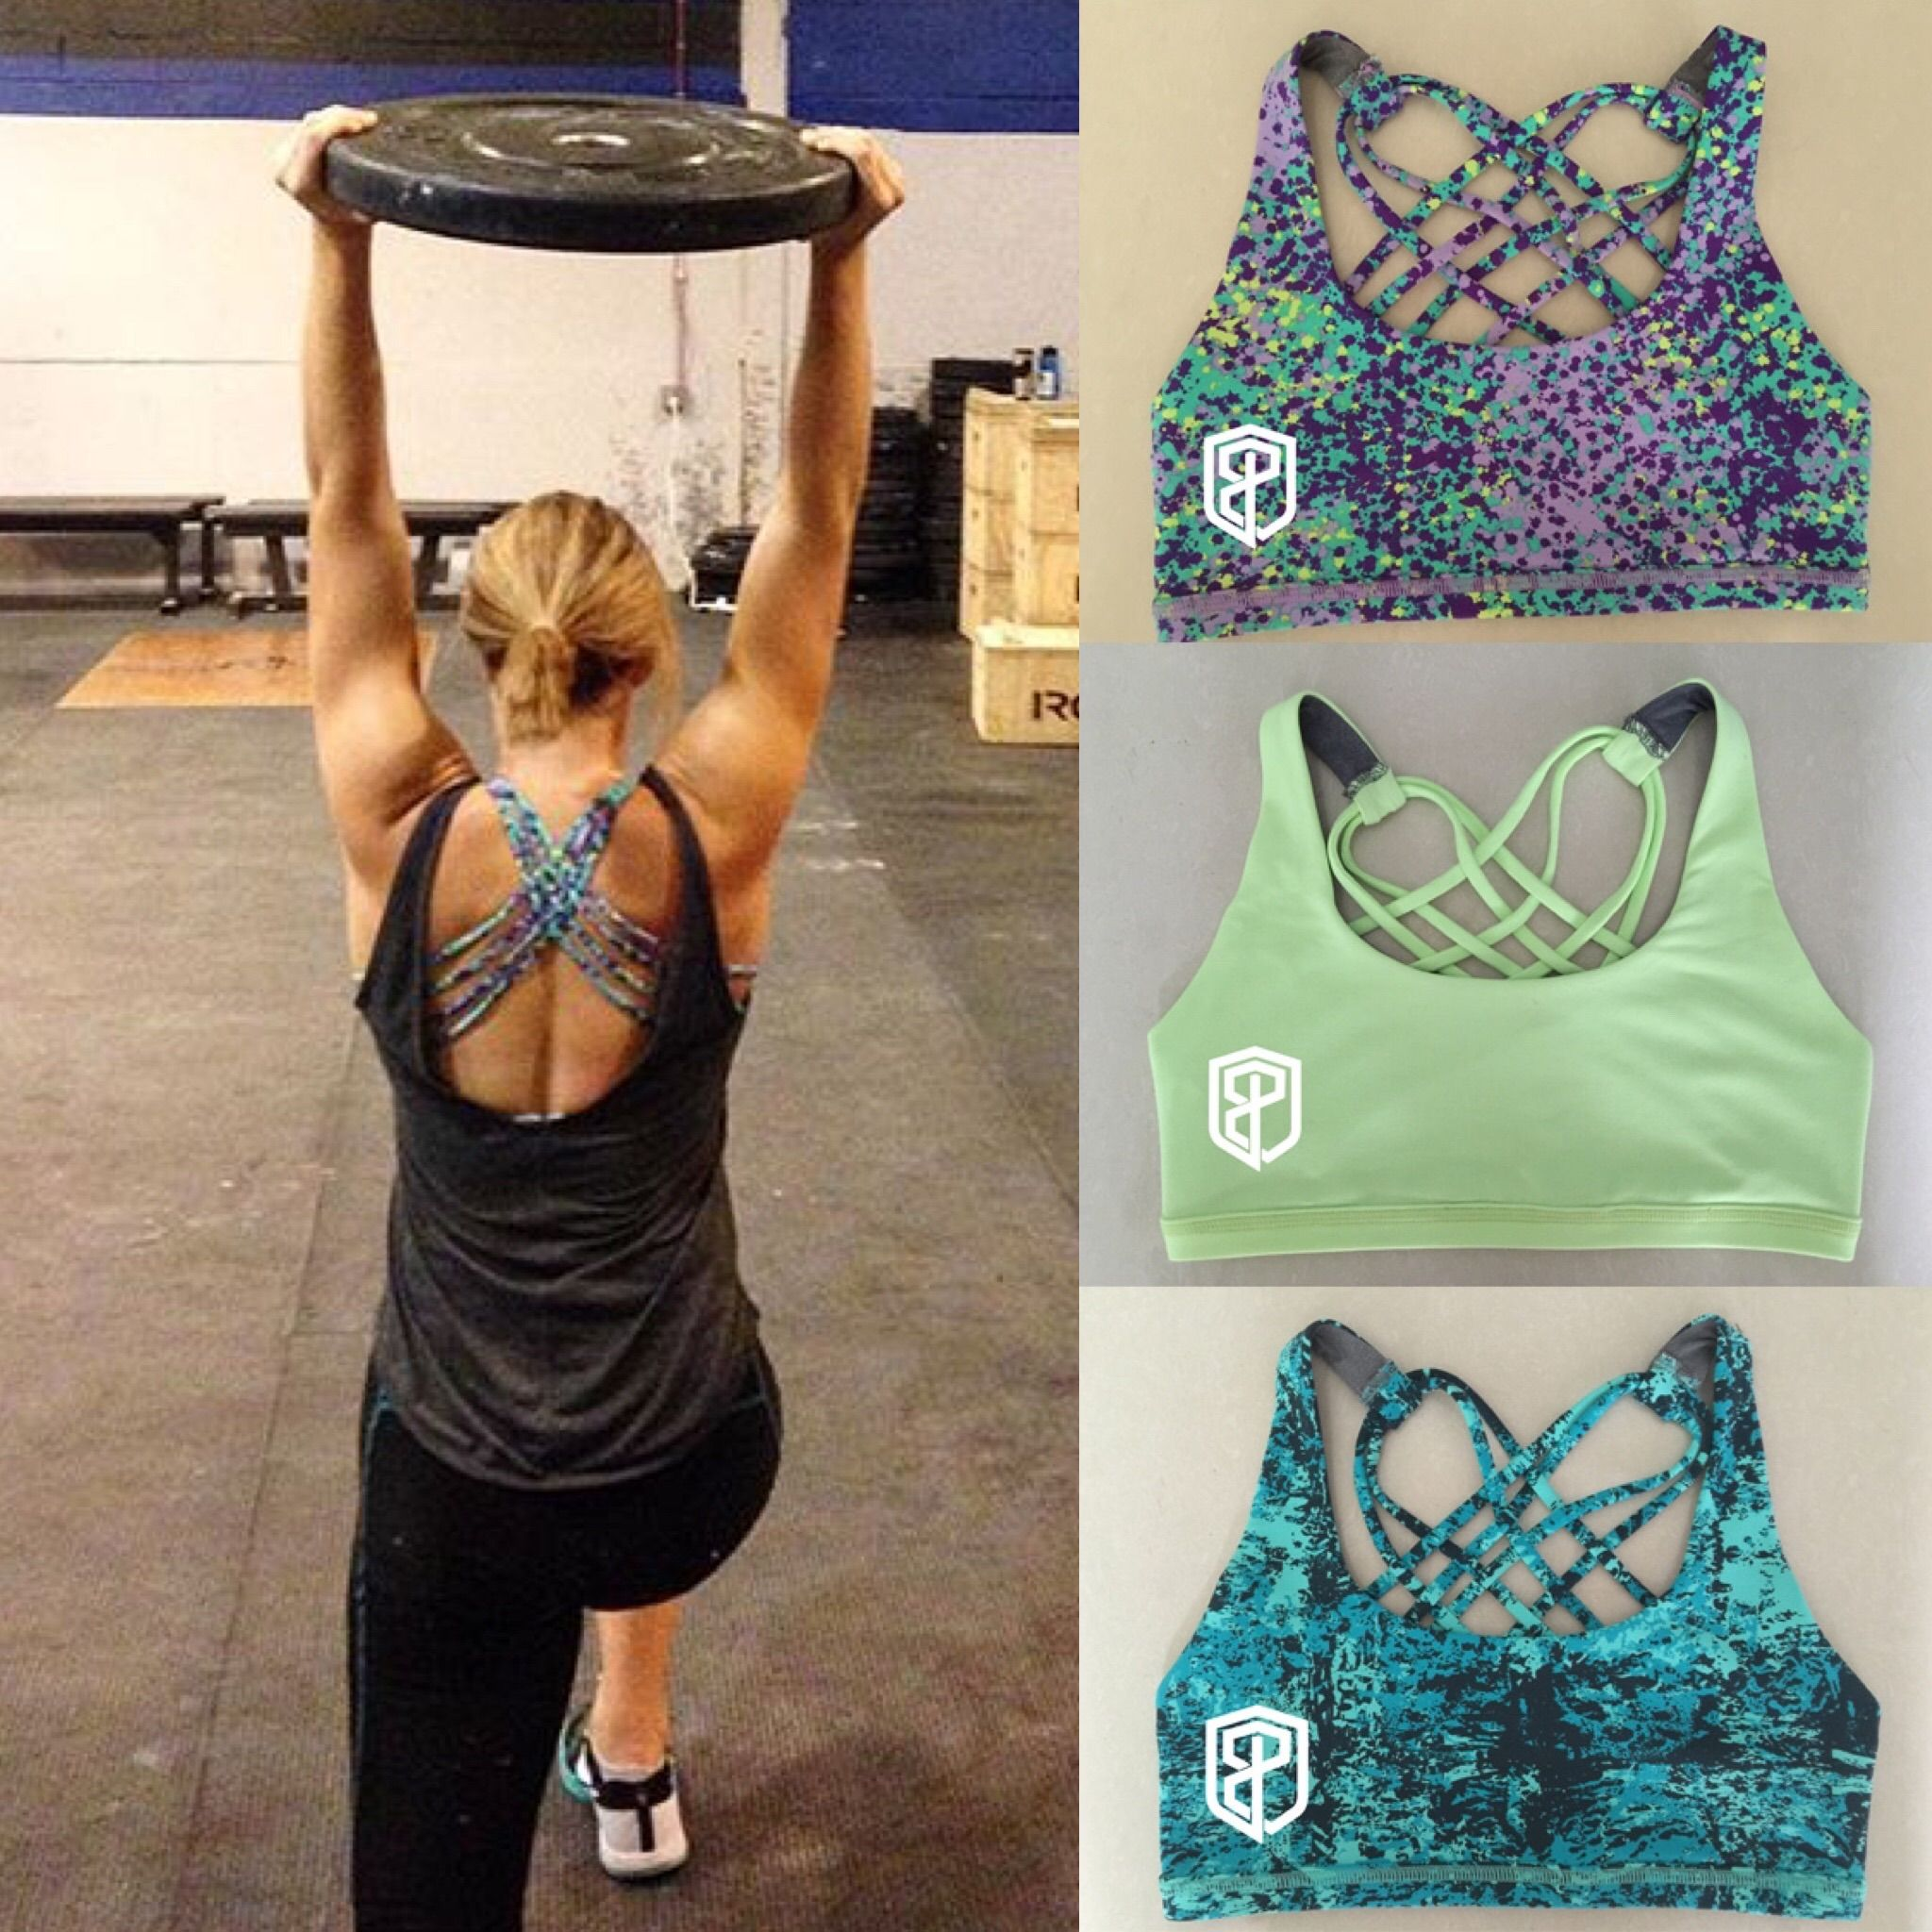 db5d3472998f8 Adorable Sport Bras by Born Primitive - cheaper and similar to LULULEMON  free to be wild bras